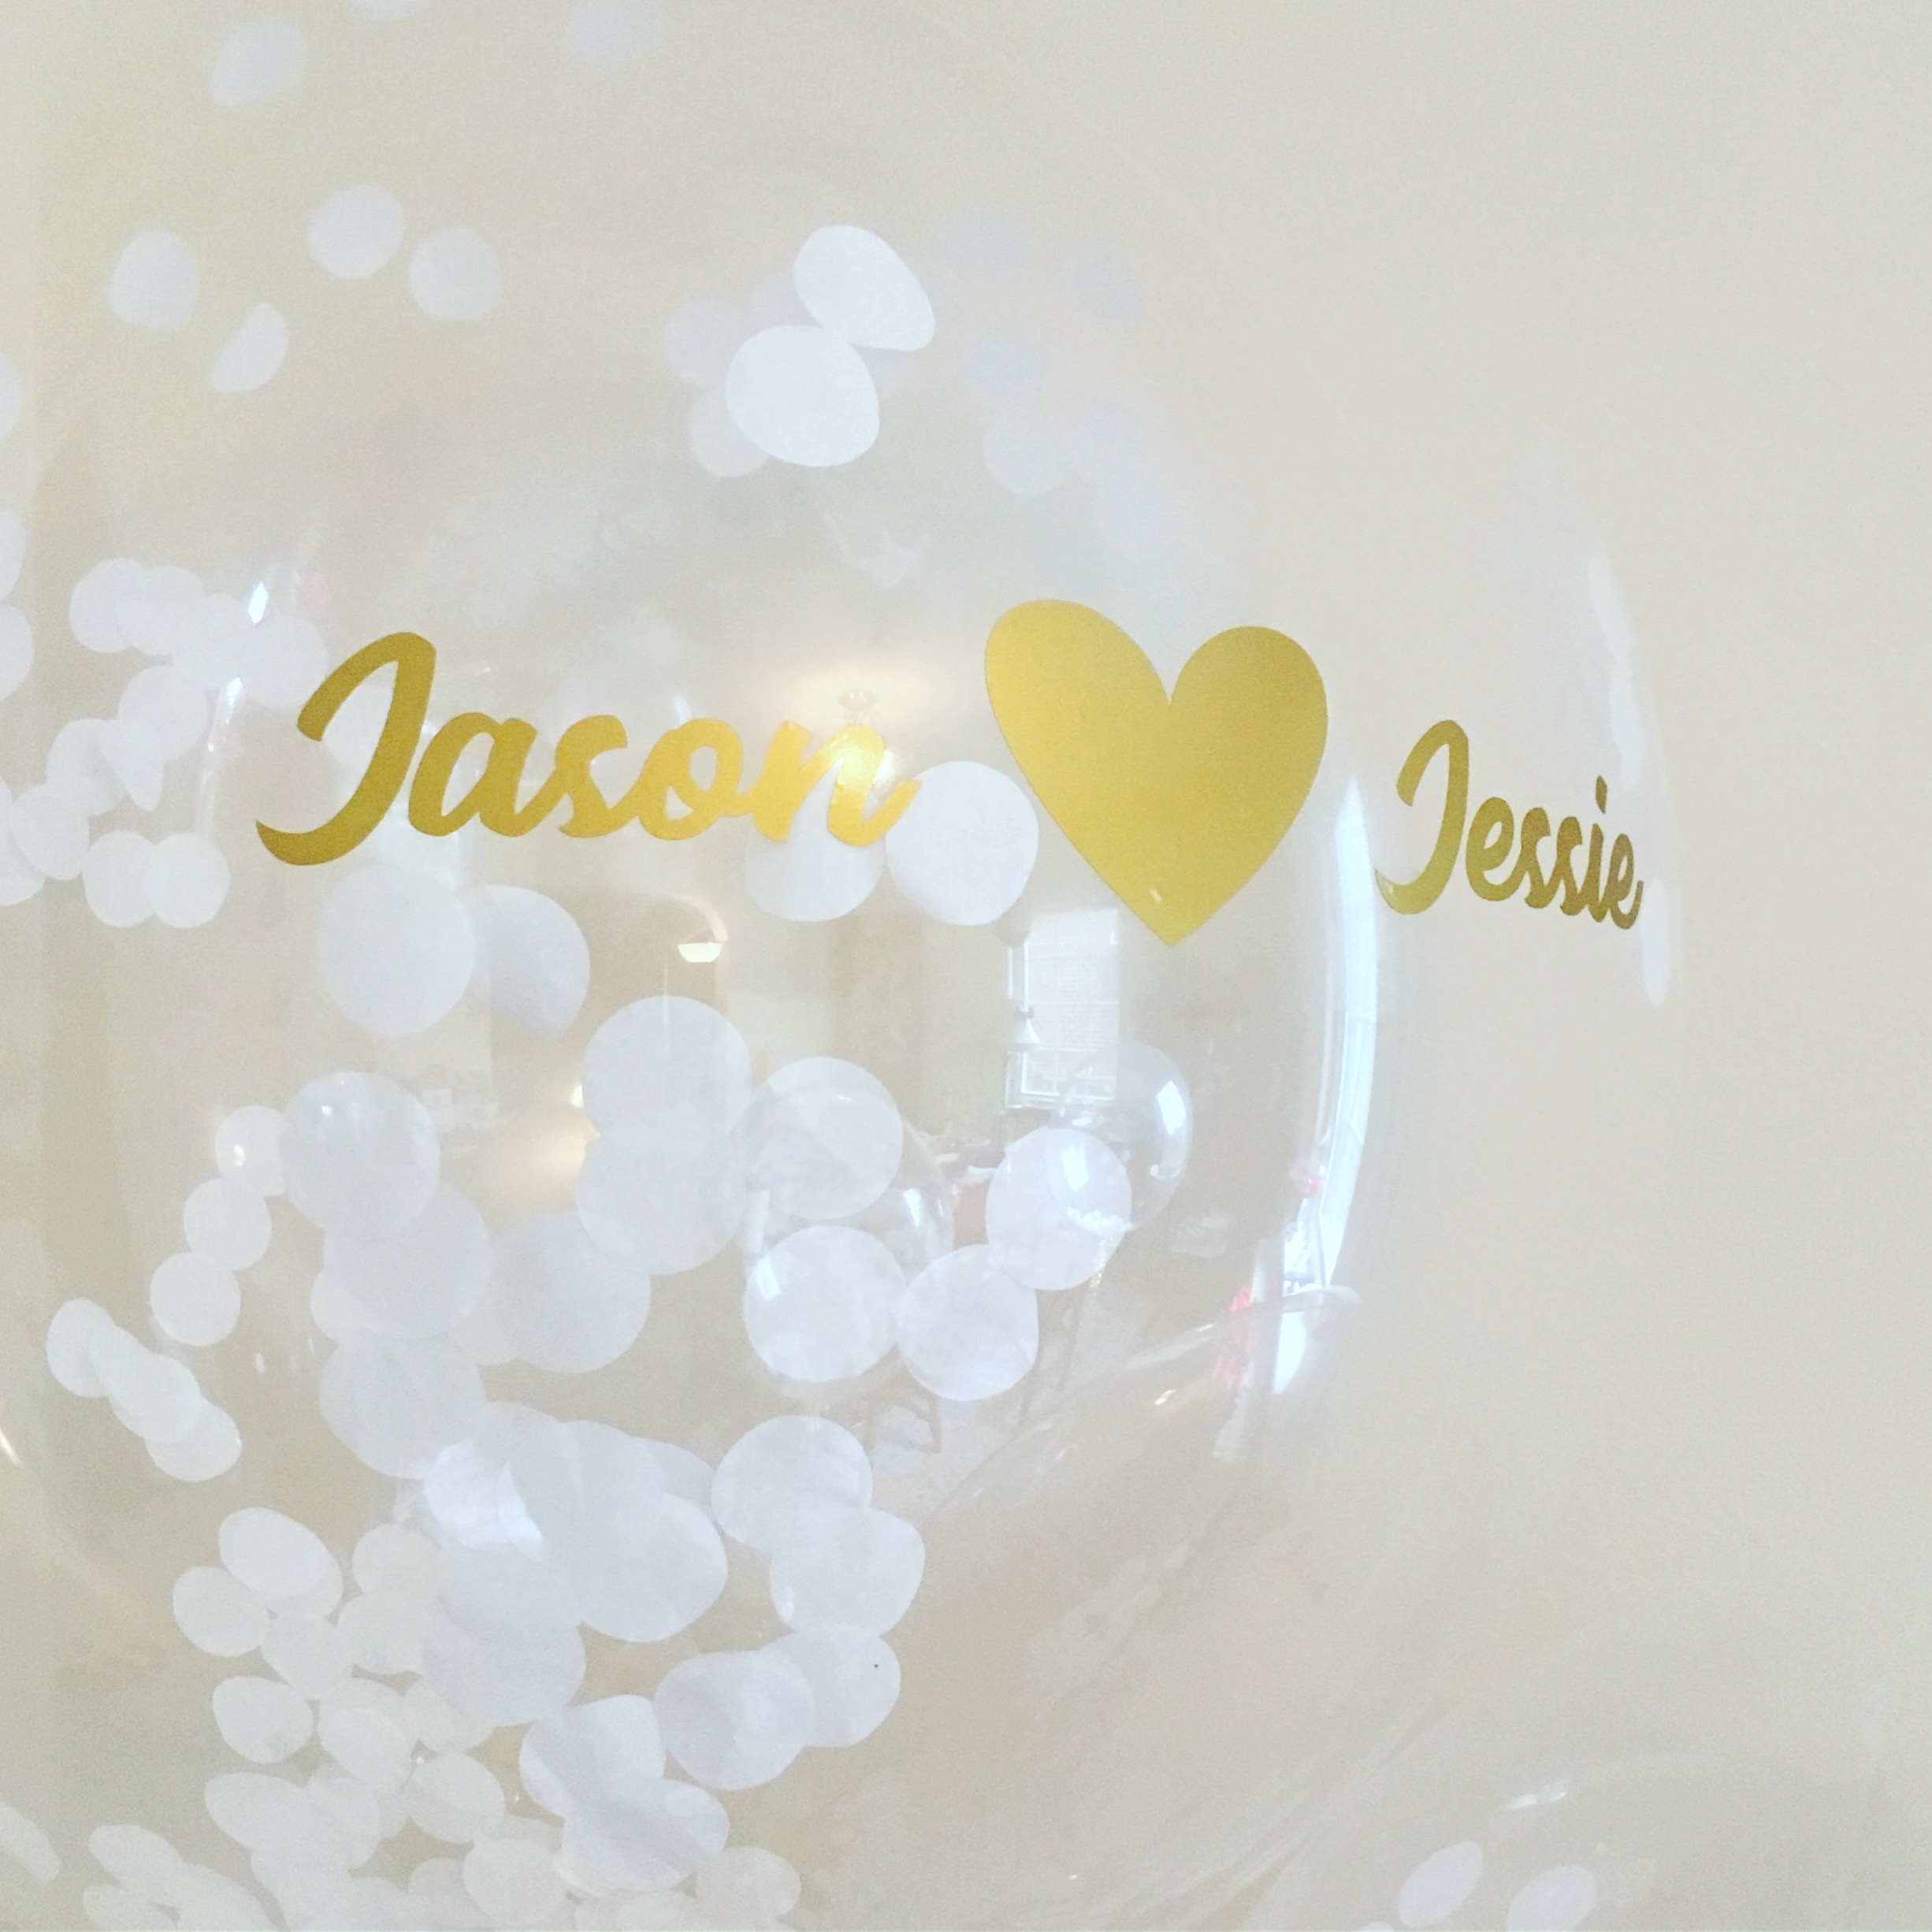 Bespoke Balloons | Washington DC | Balloon Zoom